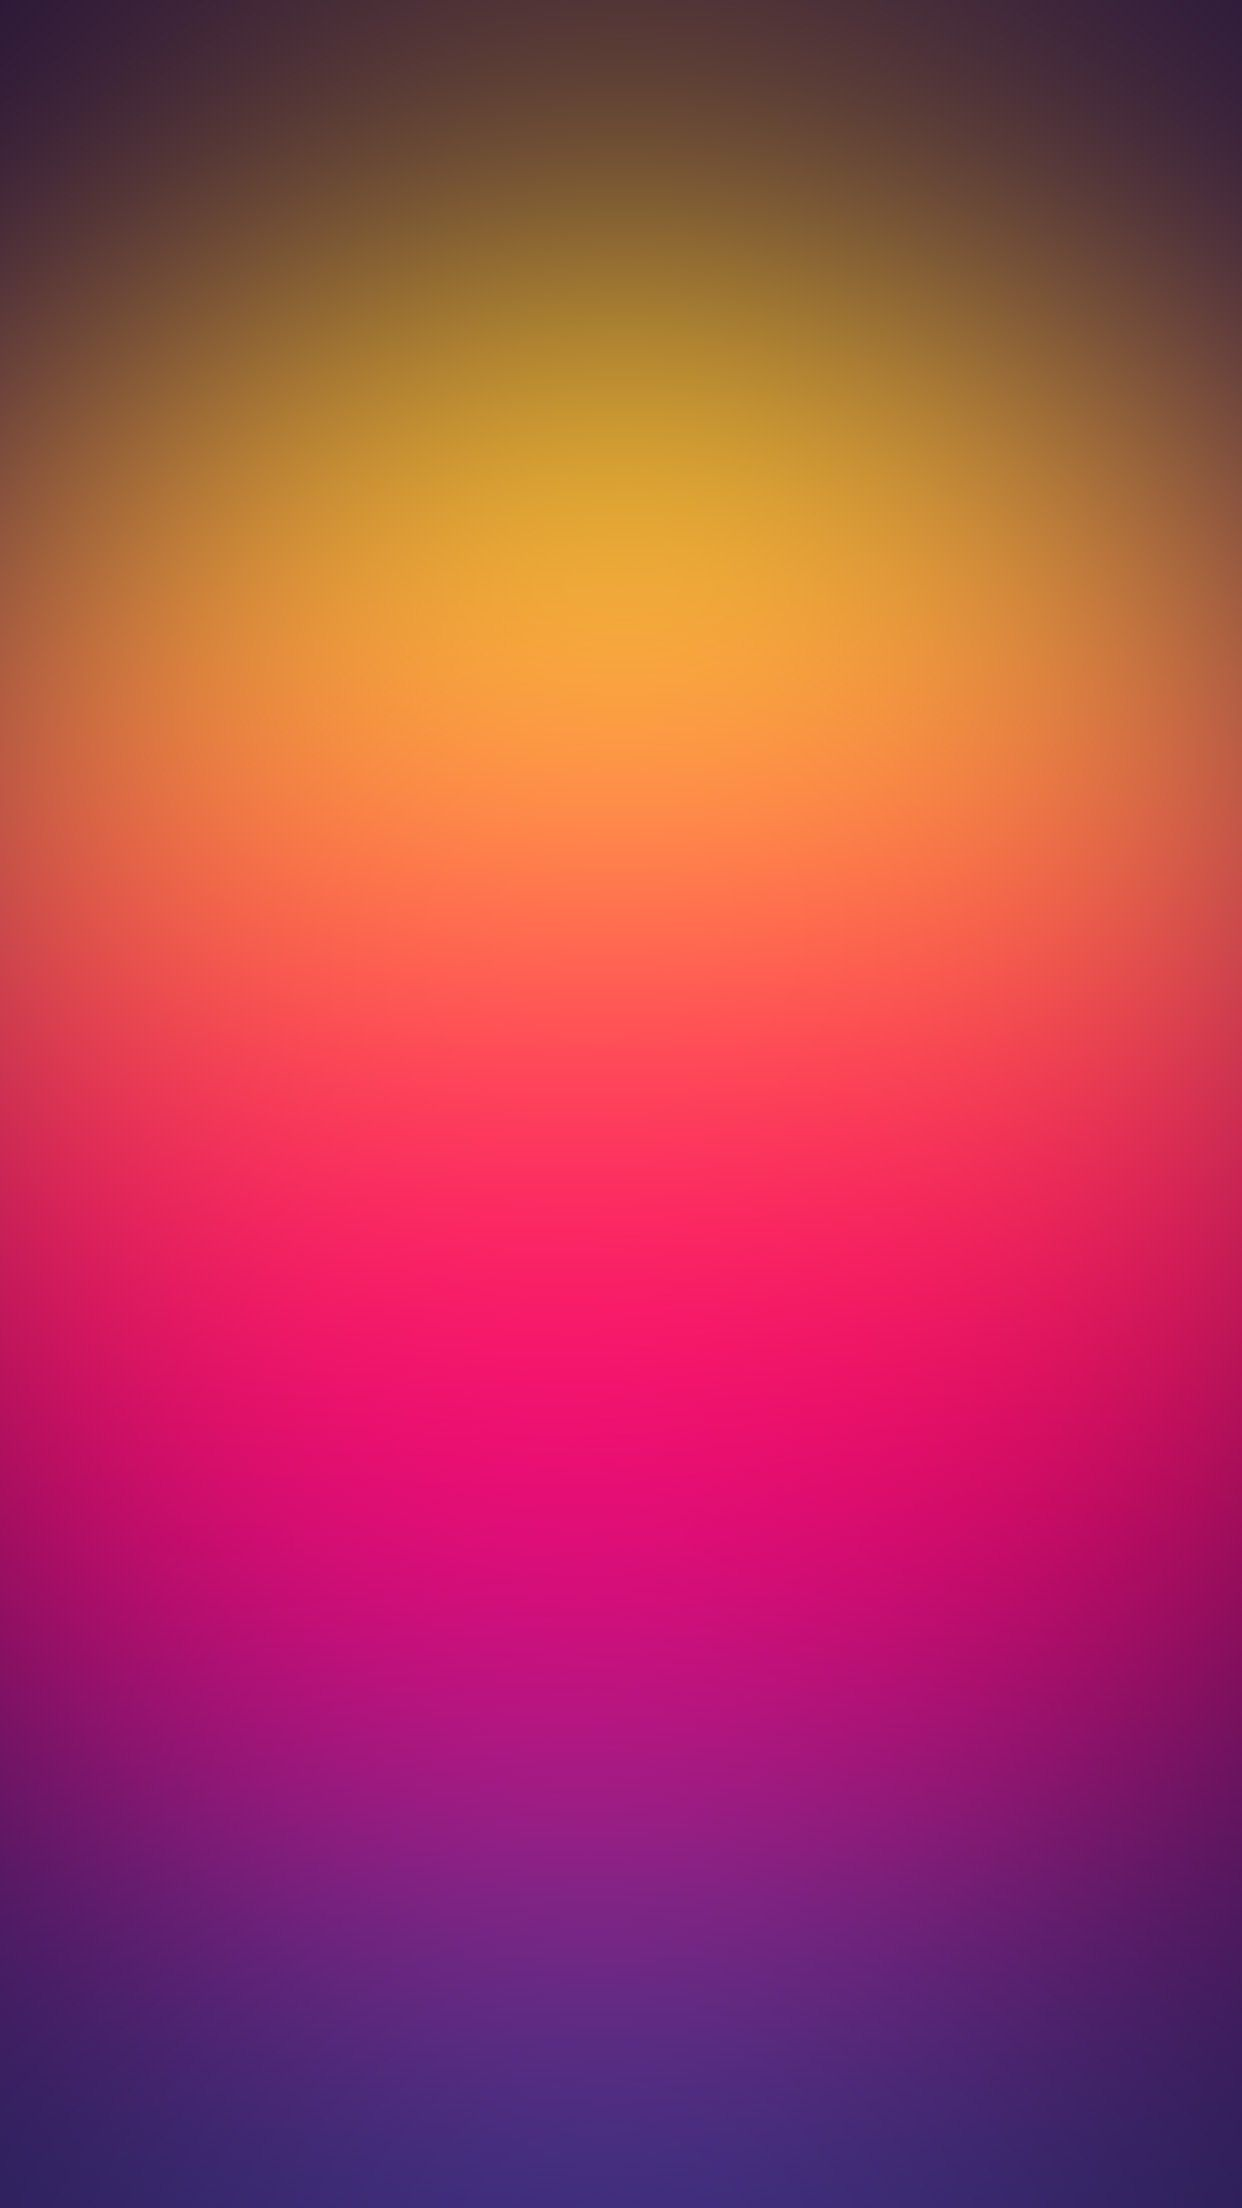 Iphone Wallpaper 4k Posted By Christopher Tremblay